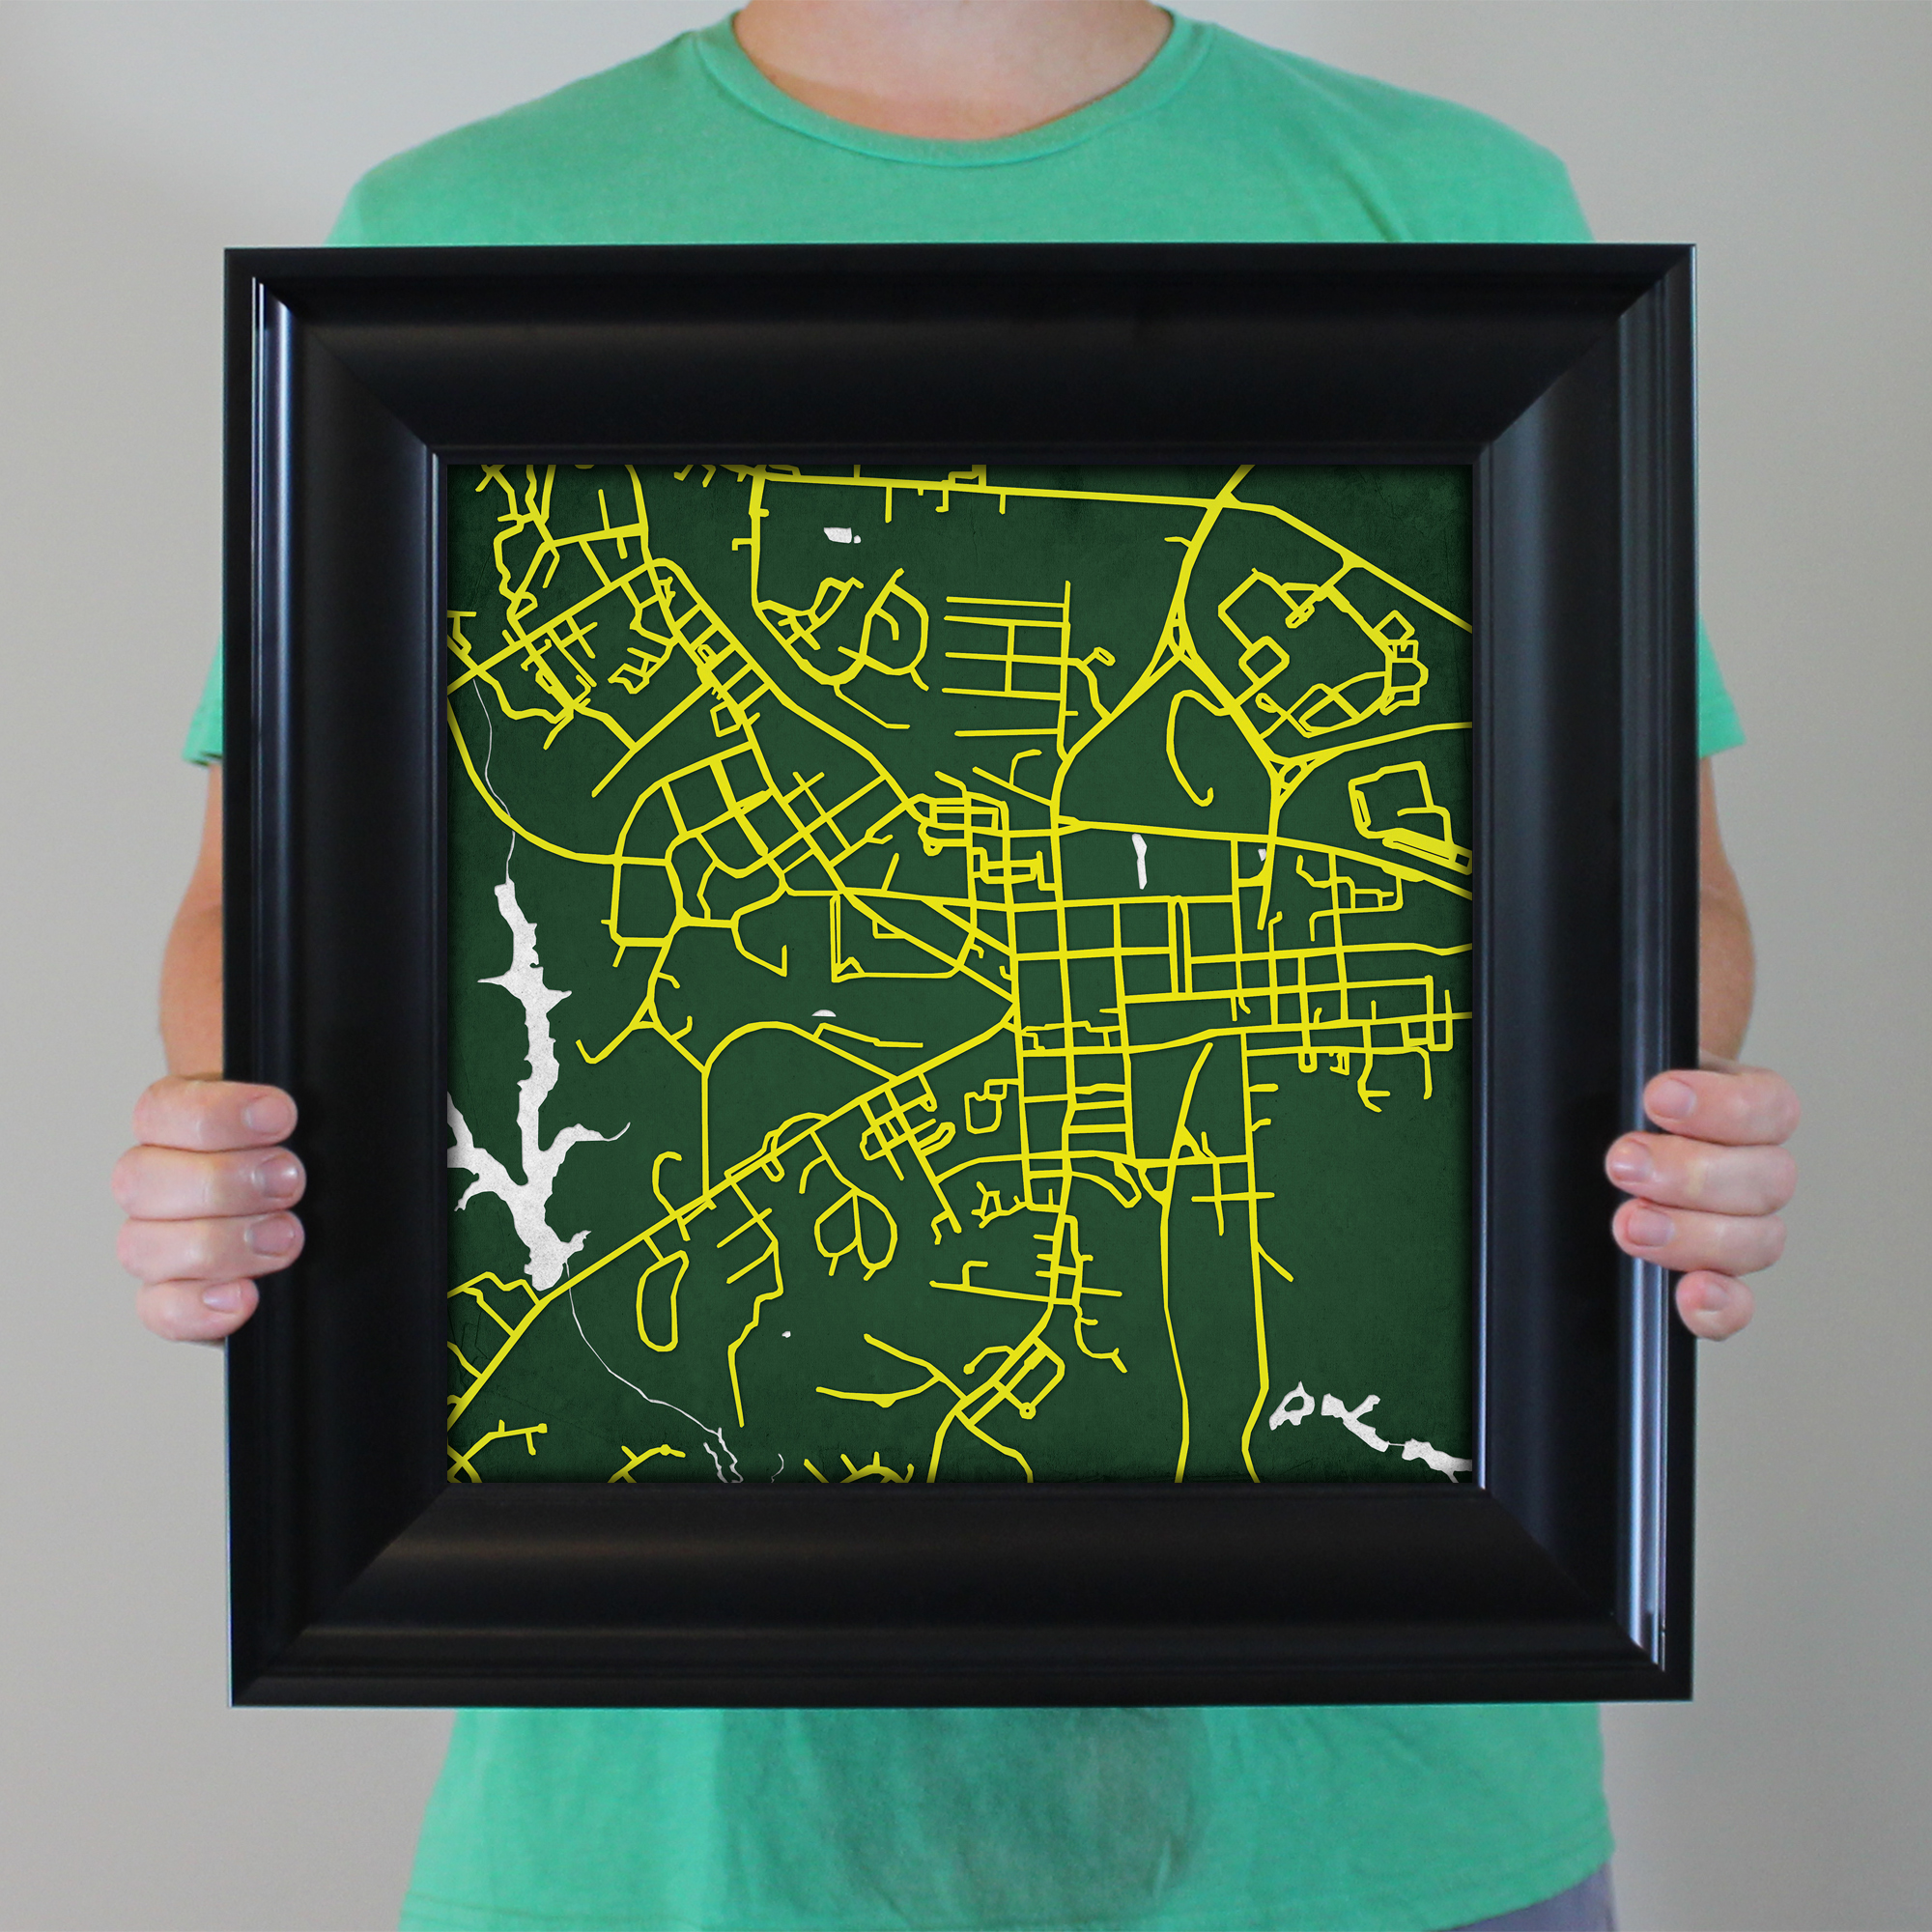 William Mary The College Of Campus Map Art City Prints